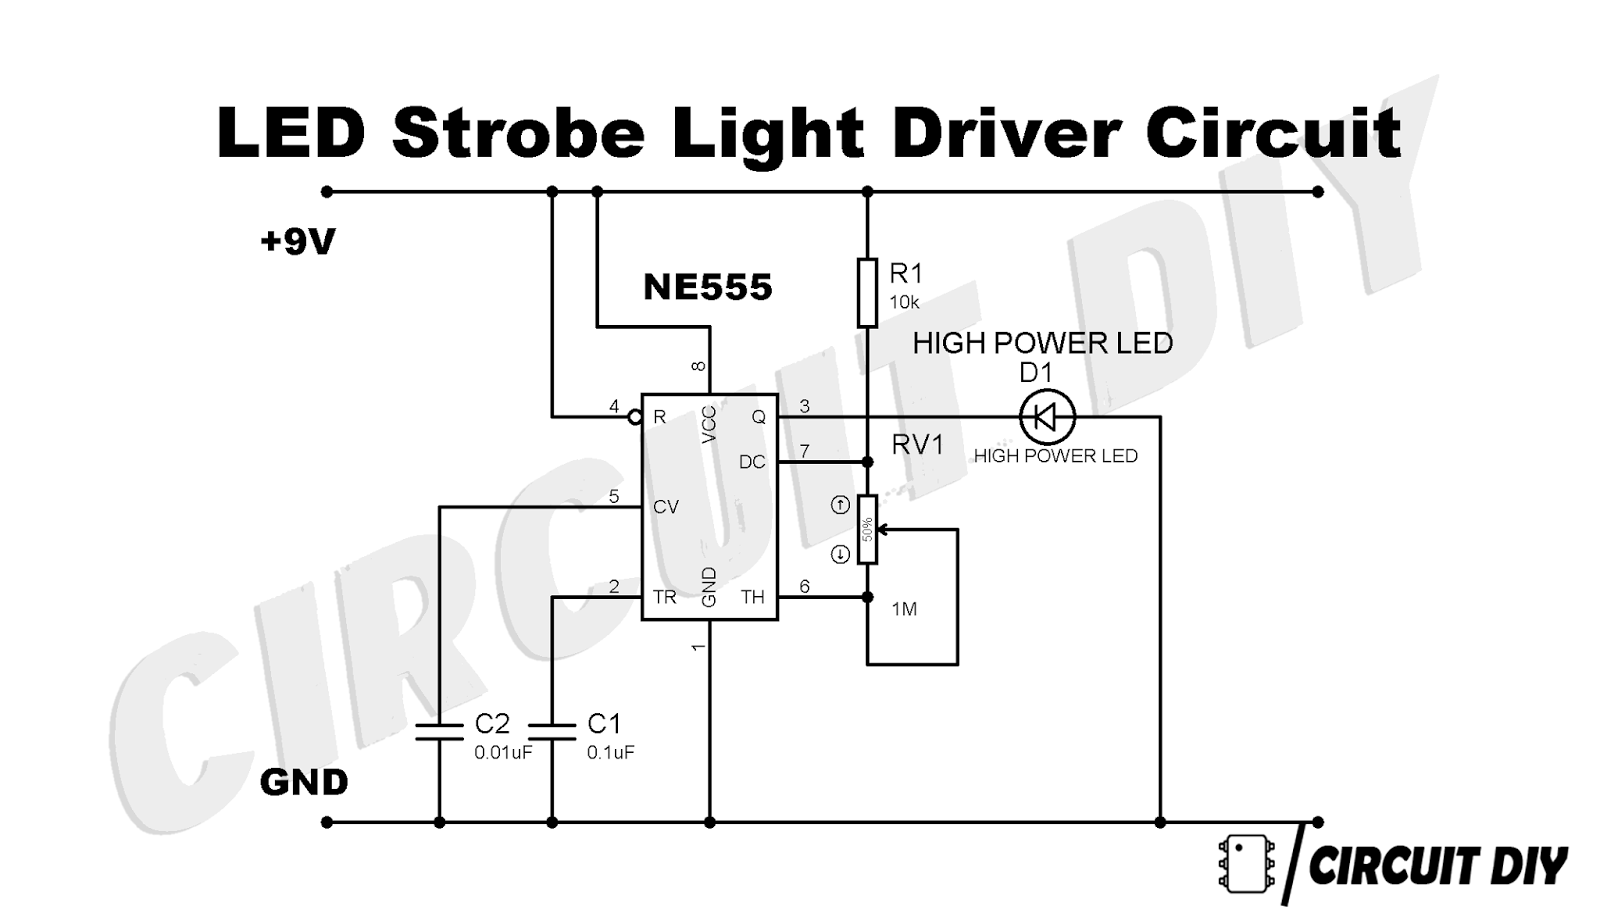 led strobe light wiring diagram electrical wiring diagram guide  led strobe wiring diagram #6